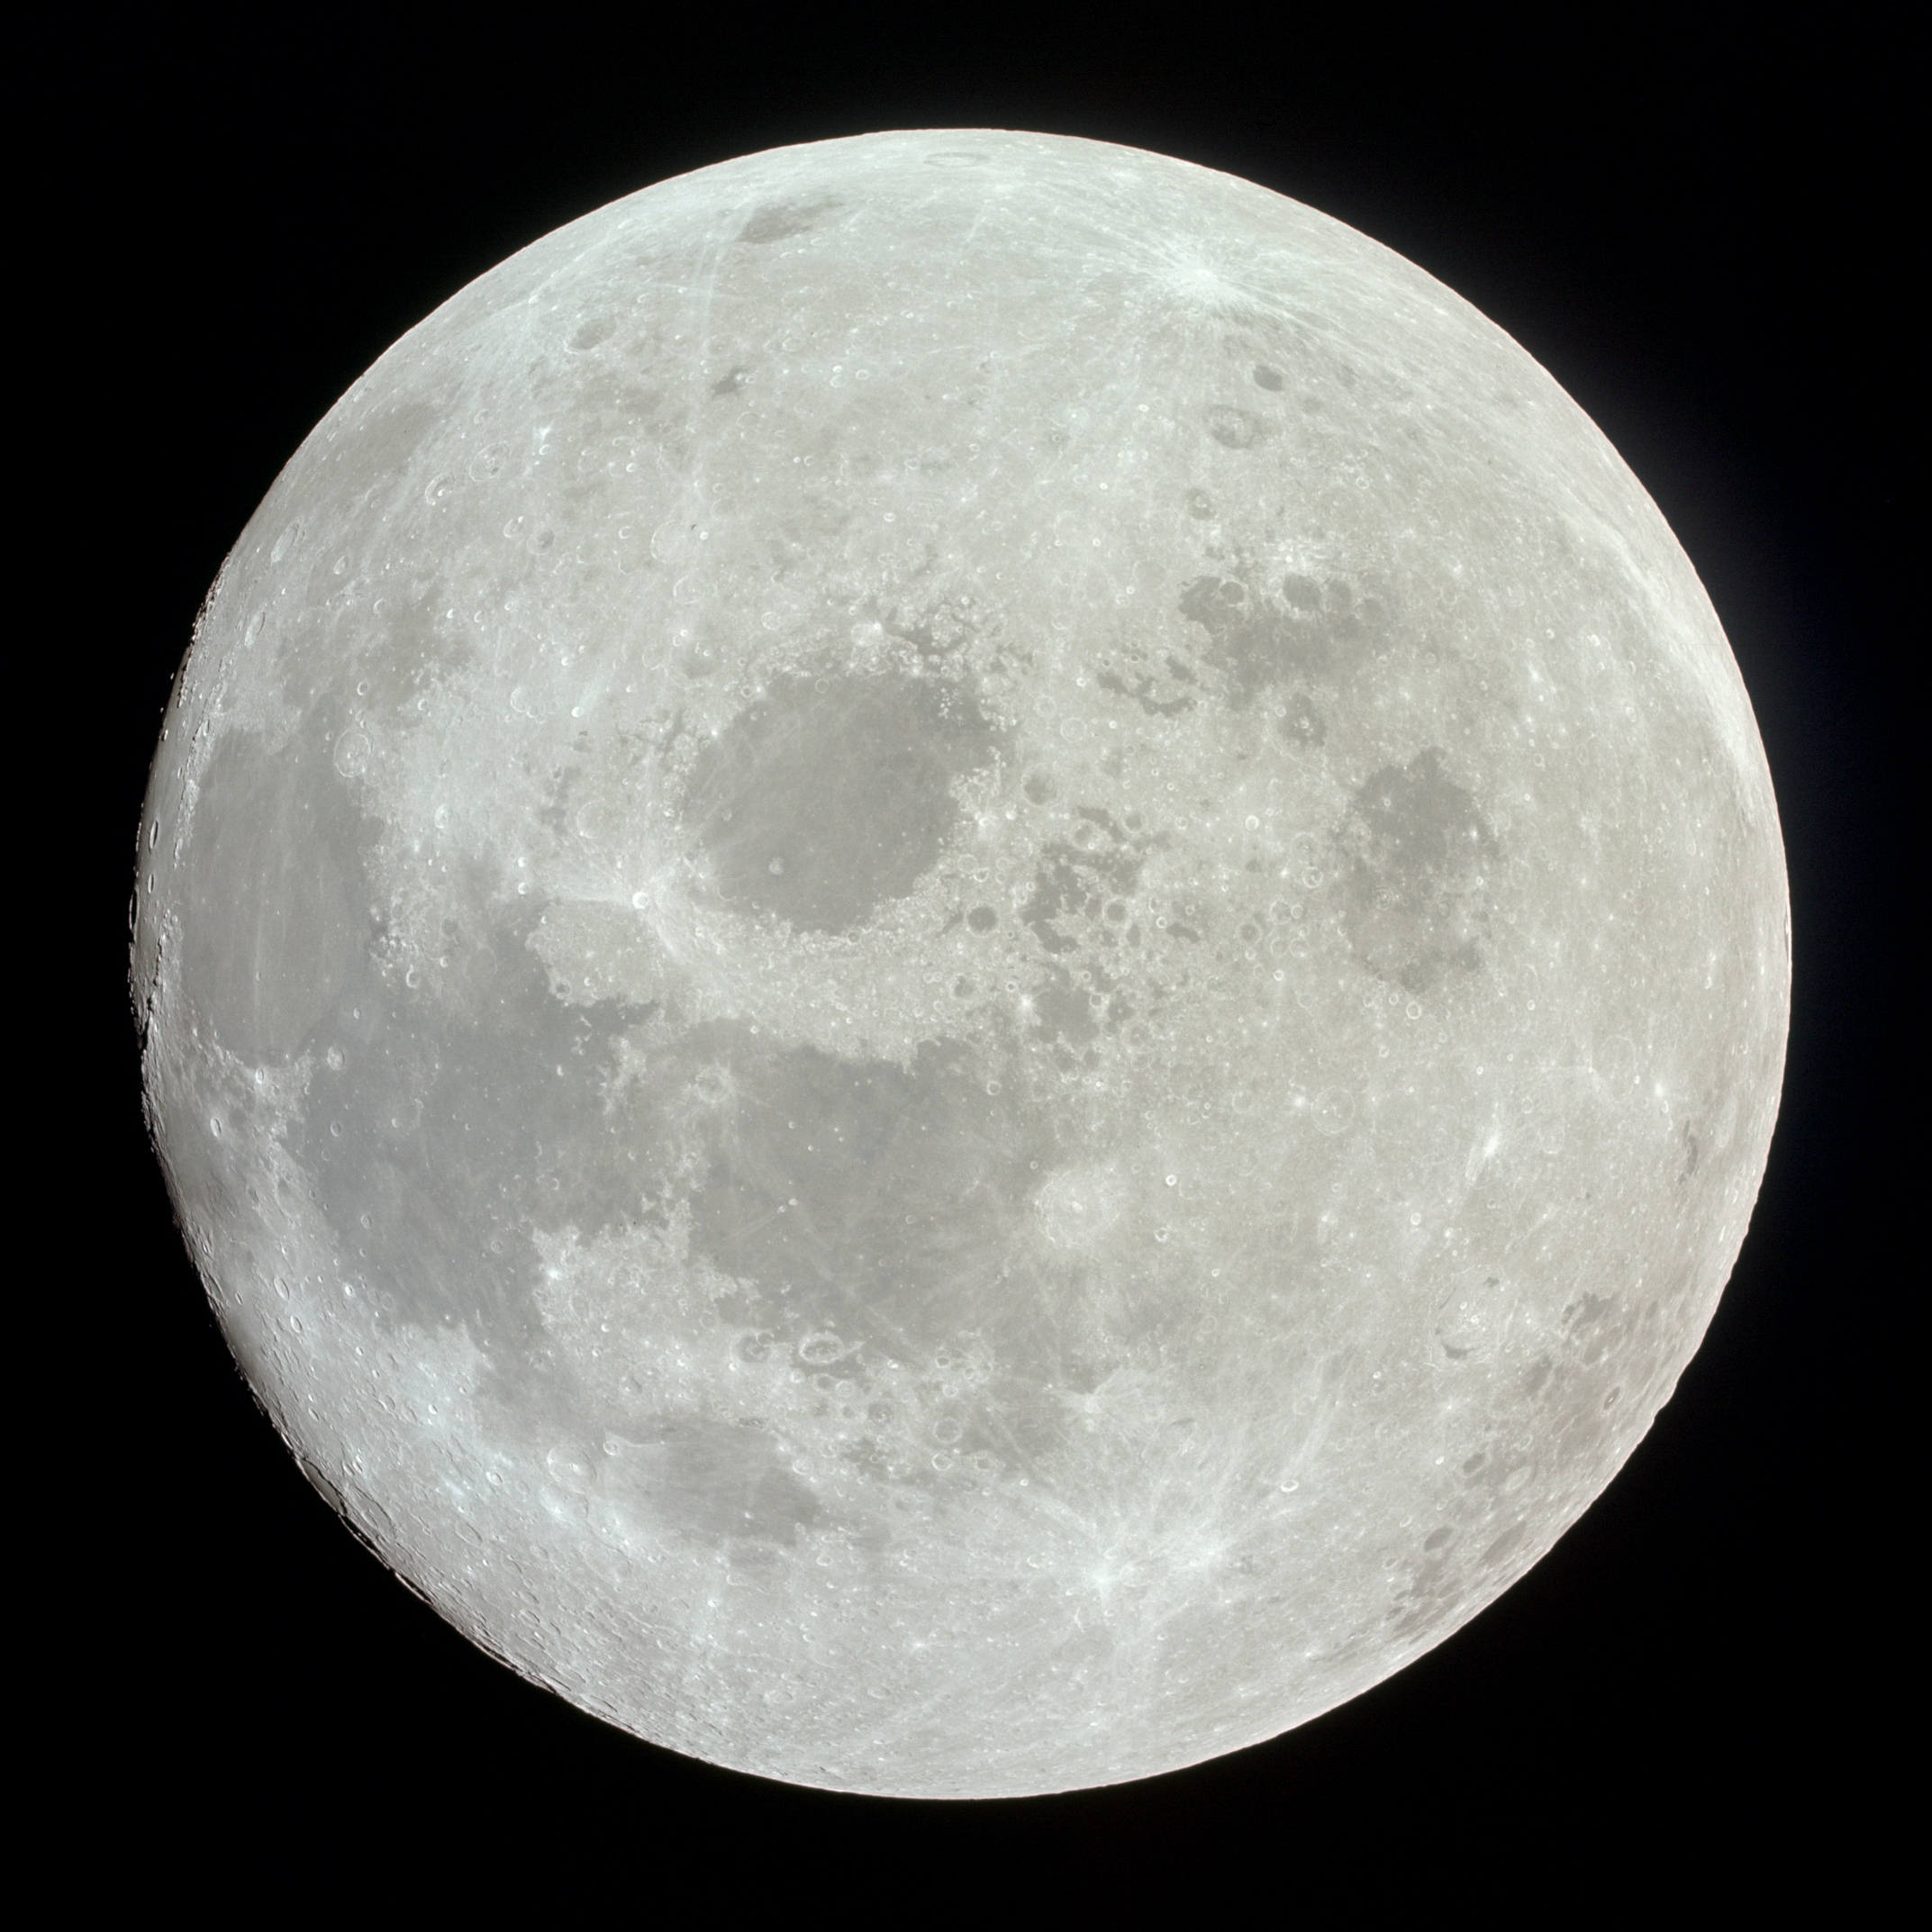 Apollo 11 image of a nearly full Moon | The Planetary Society